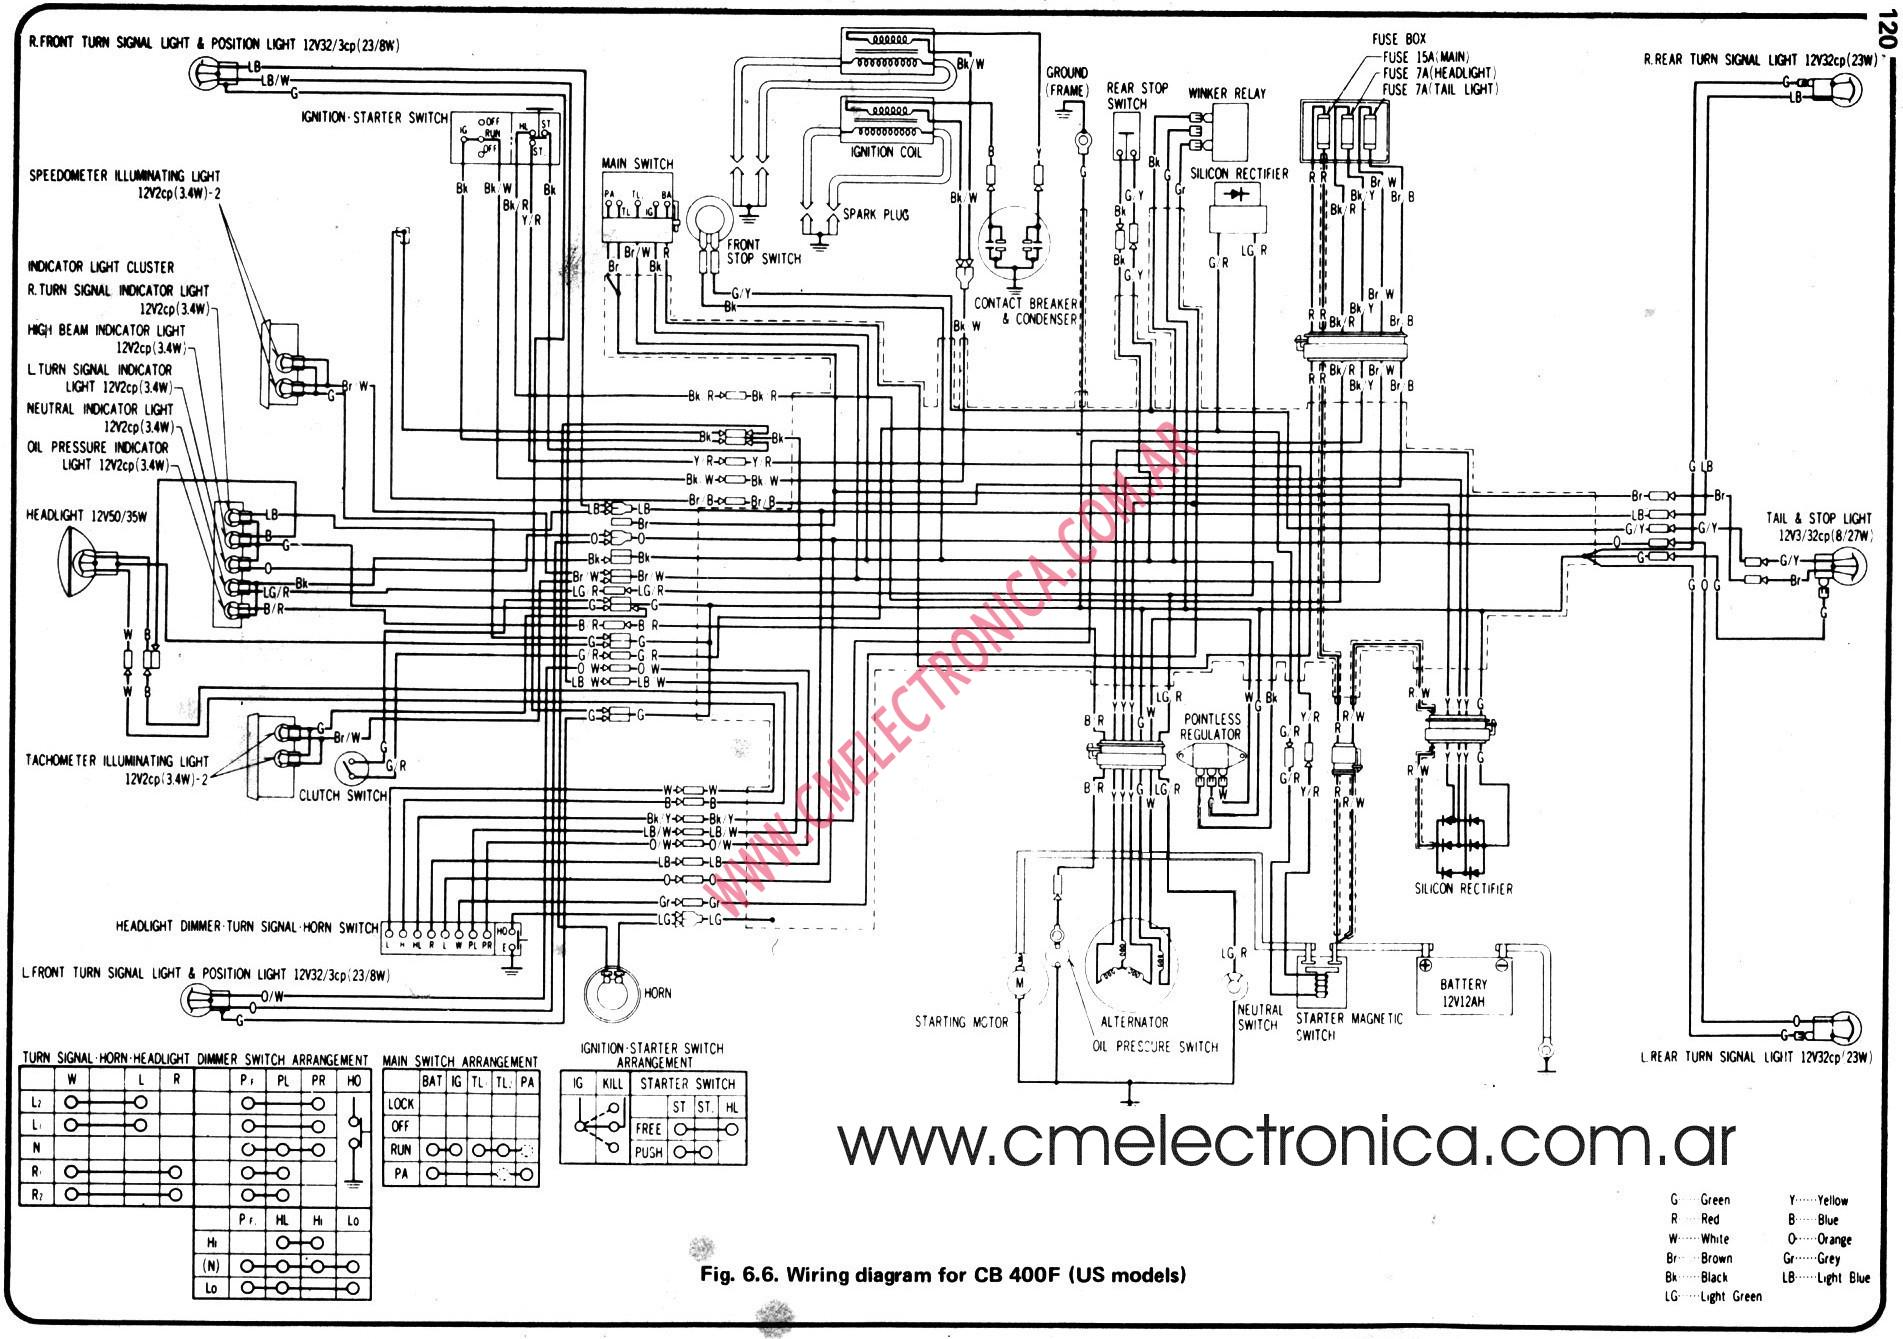 cb400 wiring diagram cb400 image wiring diagram honda cb400 super four wiring diagram jodebal com on cb400 wiring diagram